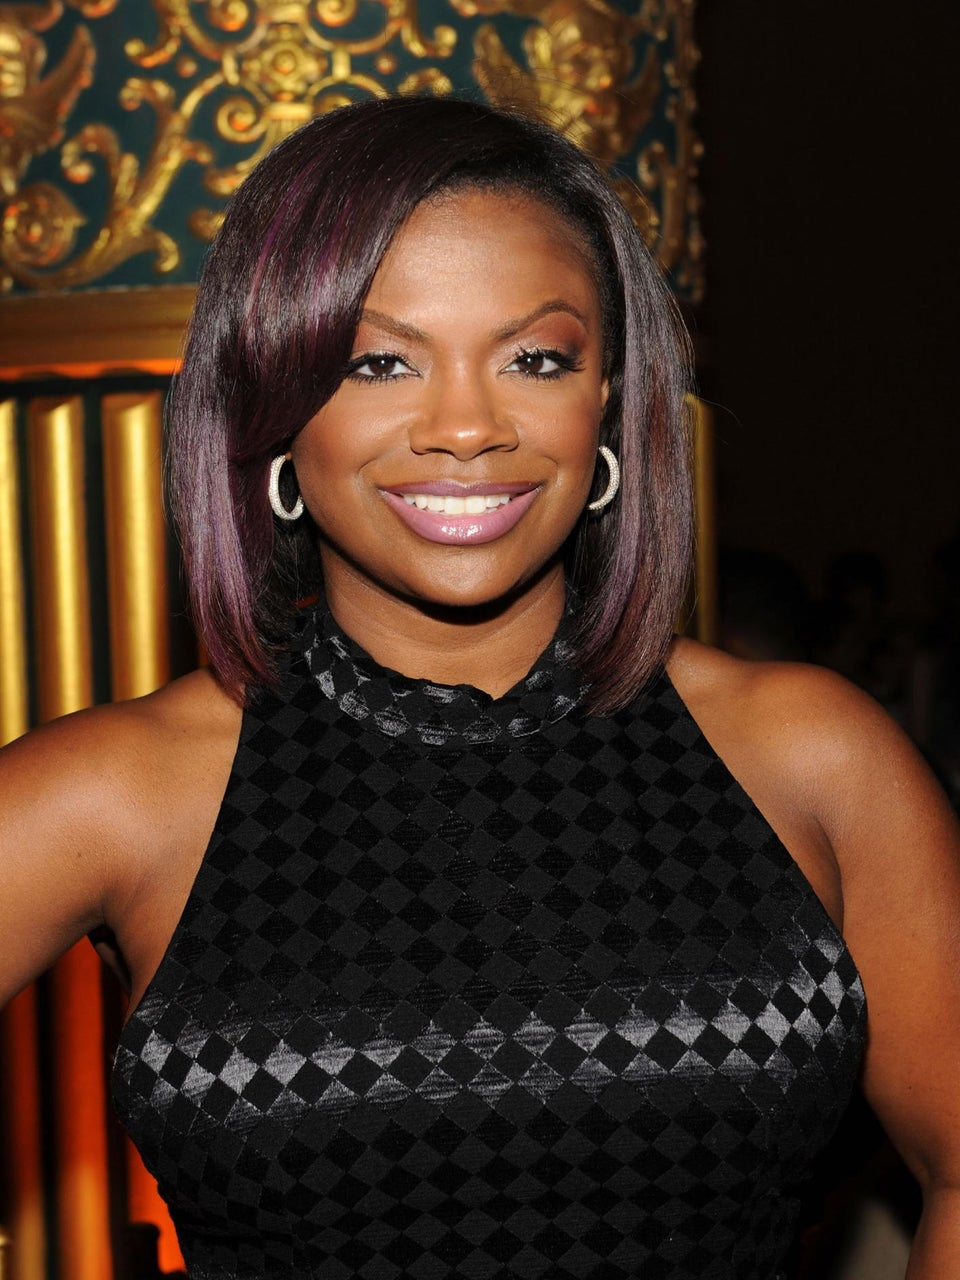 2015 Empower U Line-Up Revealed: Featuring Kandi Burruss, Shaun T, Kelly Price and More